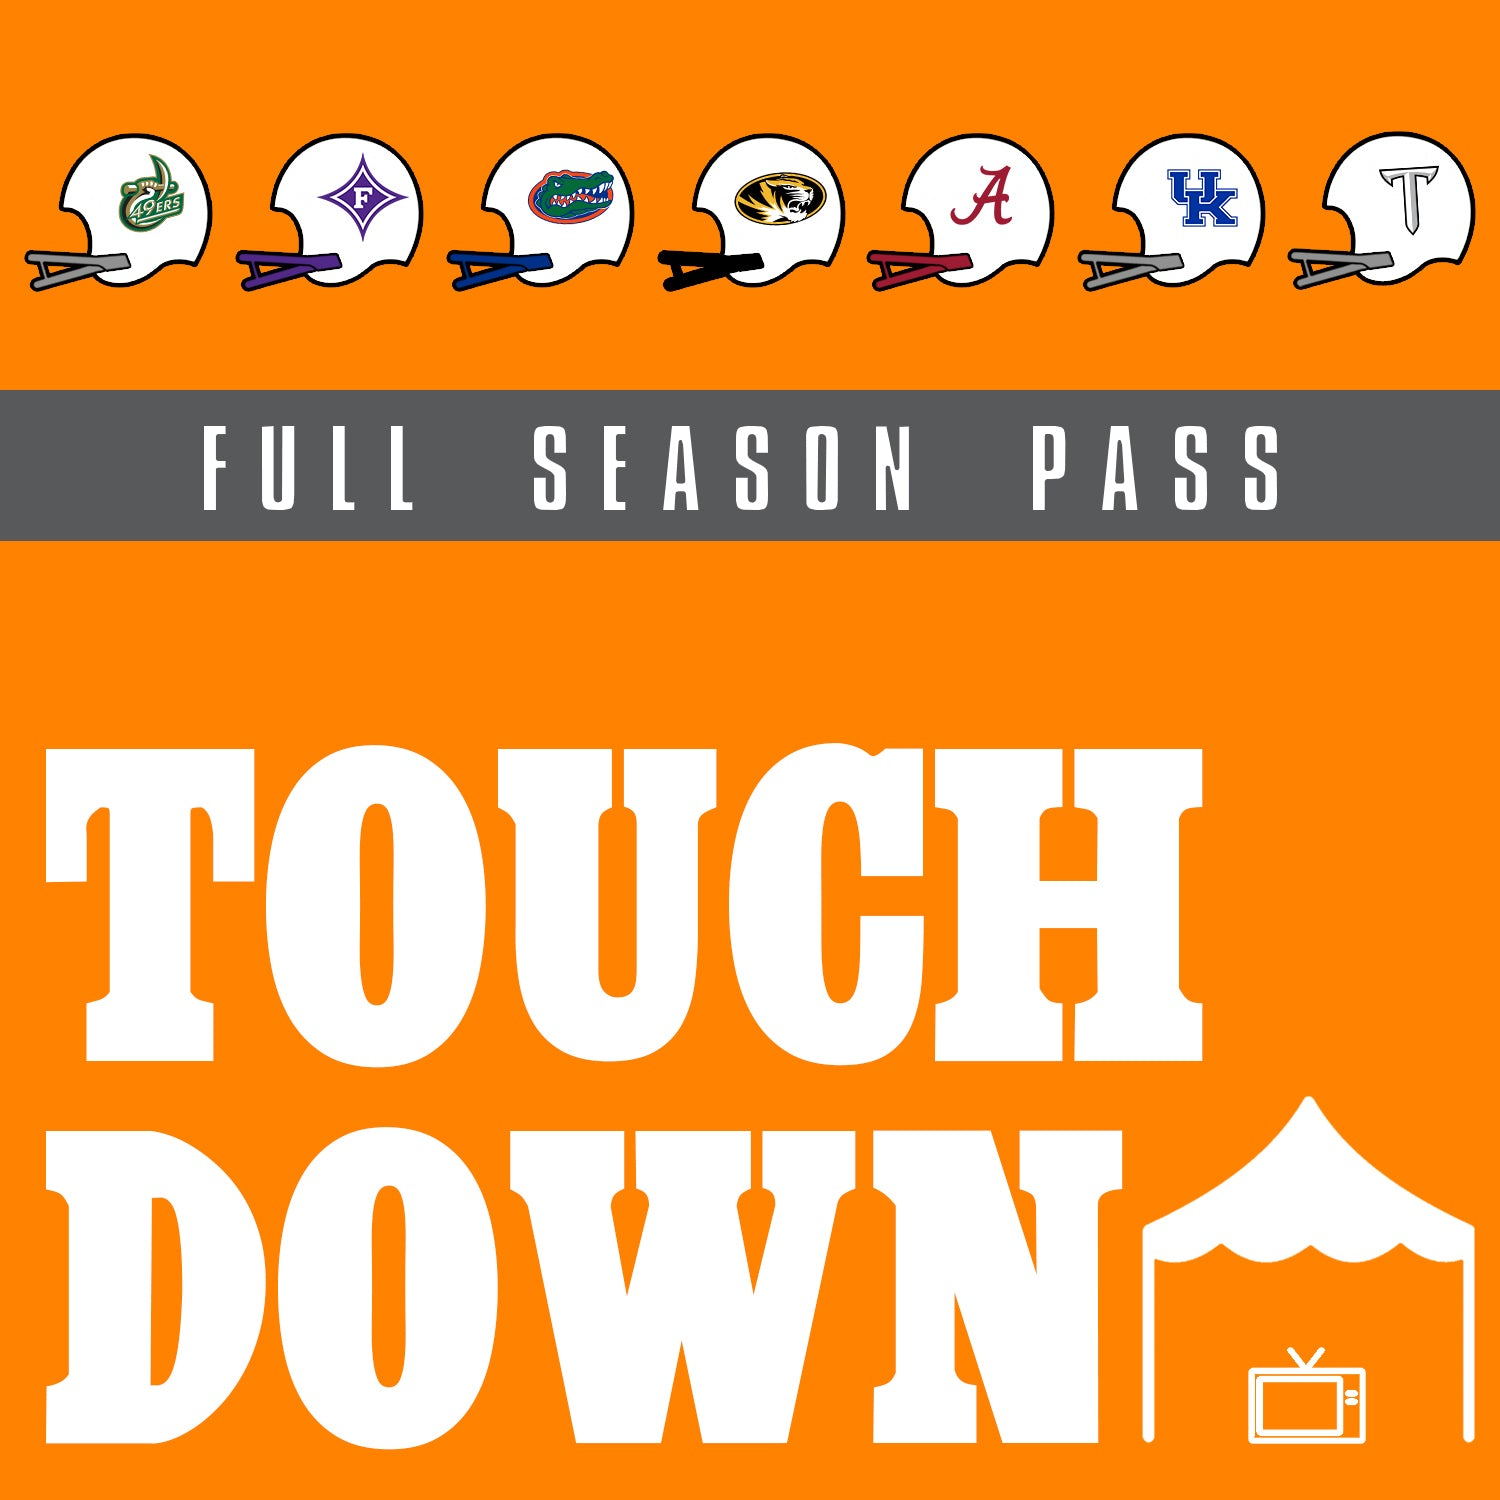 Touchdown Tailgate Package - 2020 Season Pass